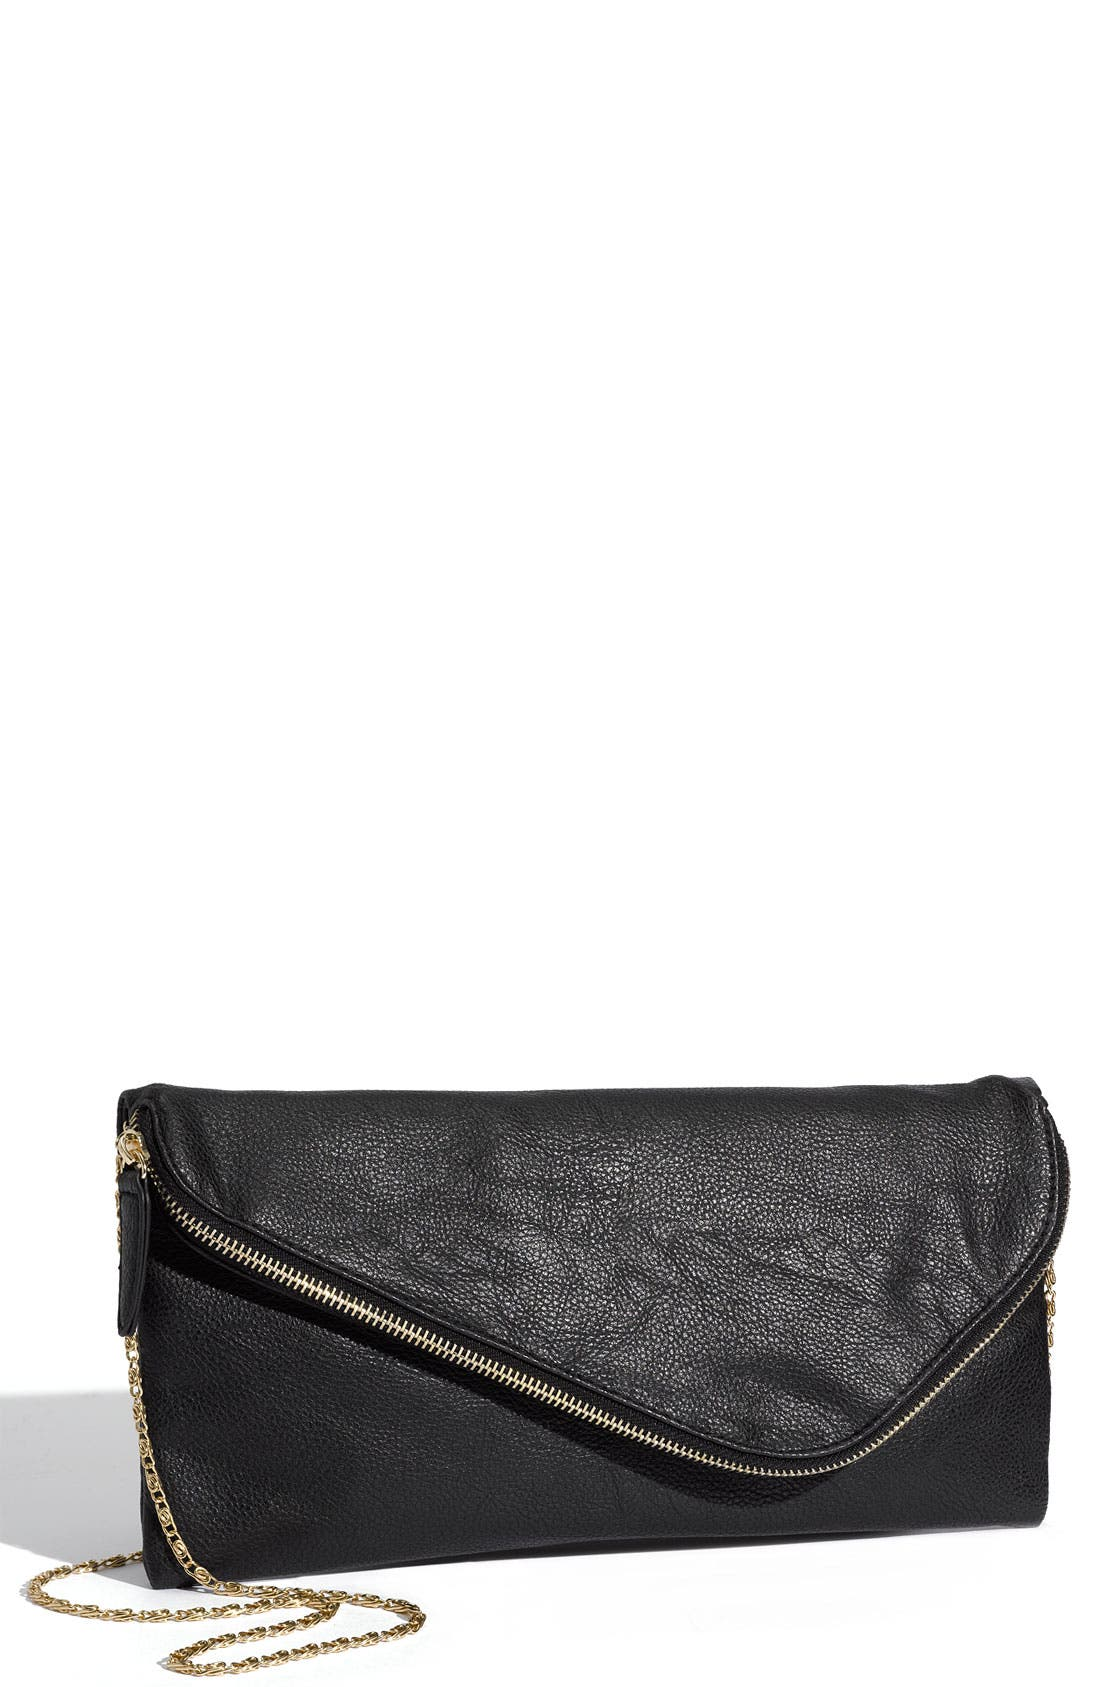 Main Image - Top Choice Zip Envelope Clutch